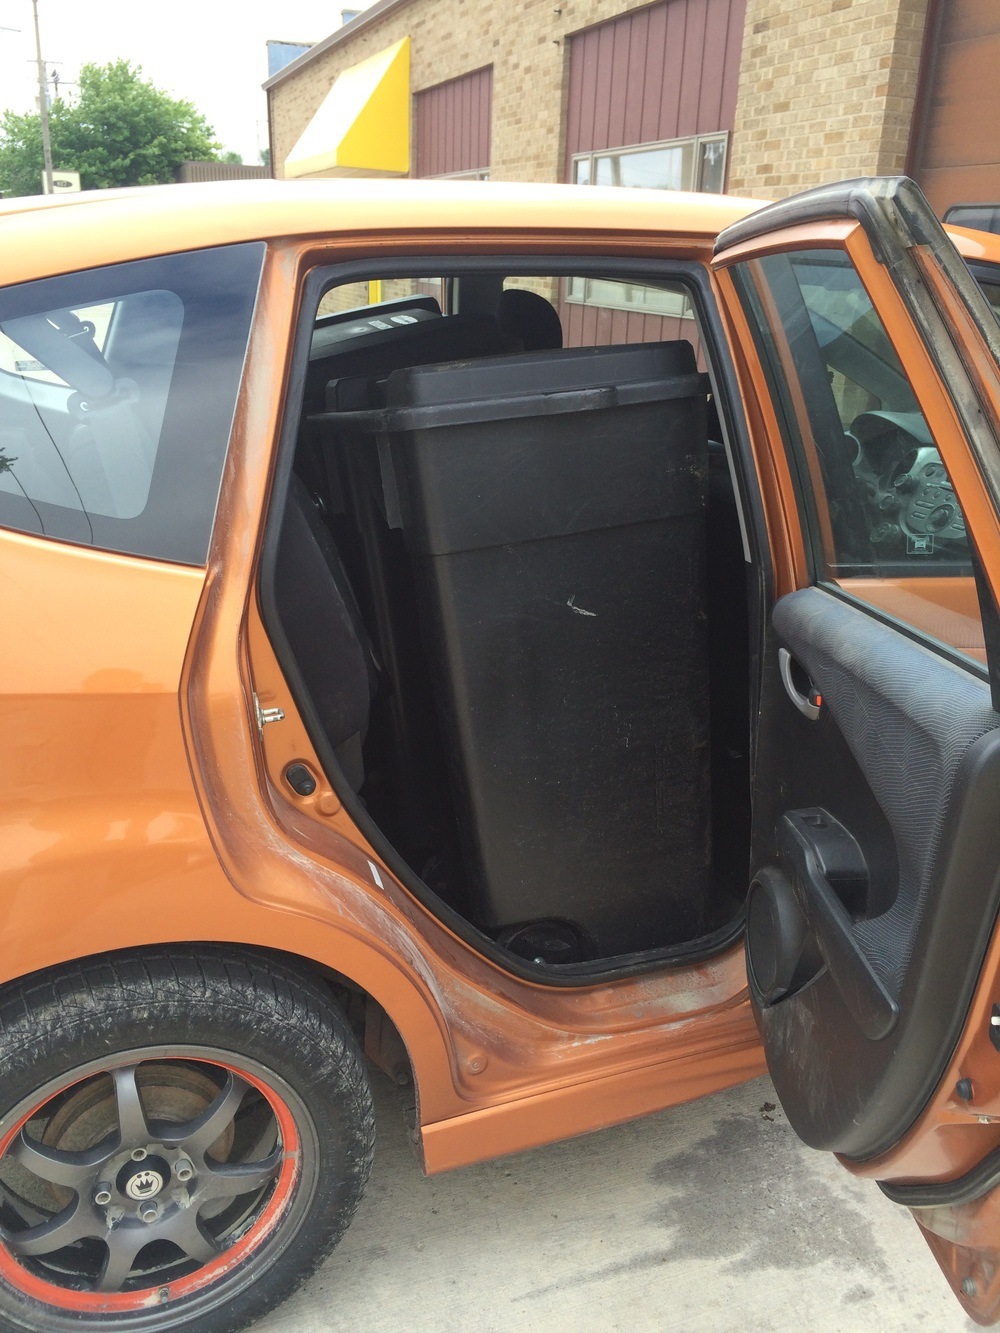 That's a pair of 50 gallon garbage cans standing upright in the back of the car...